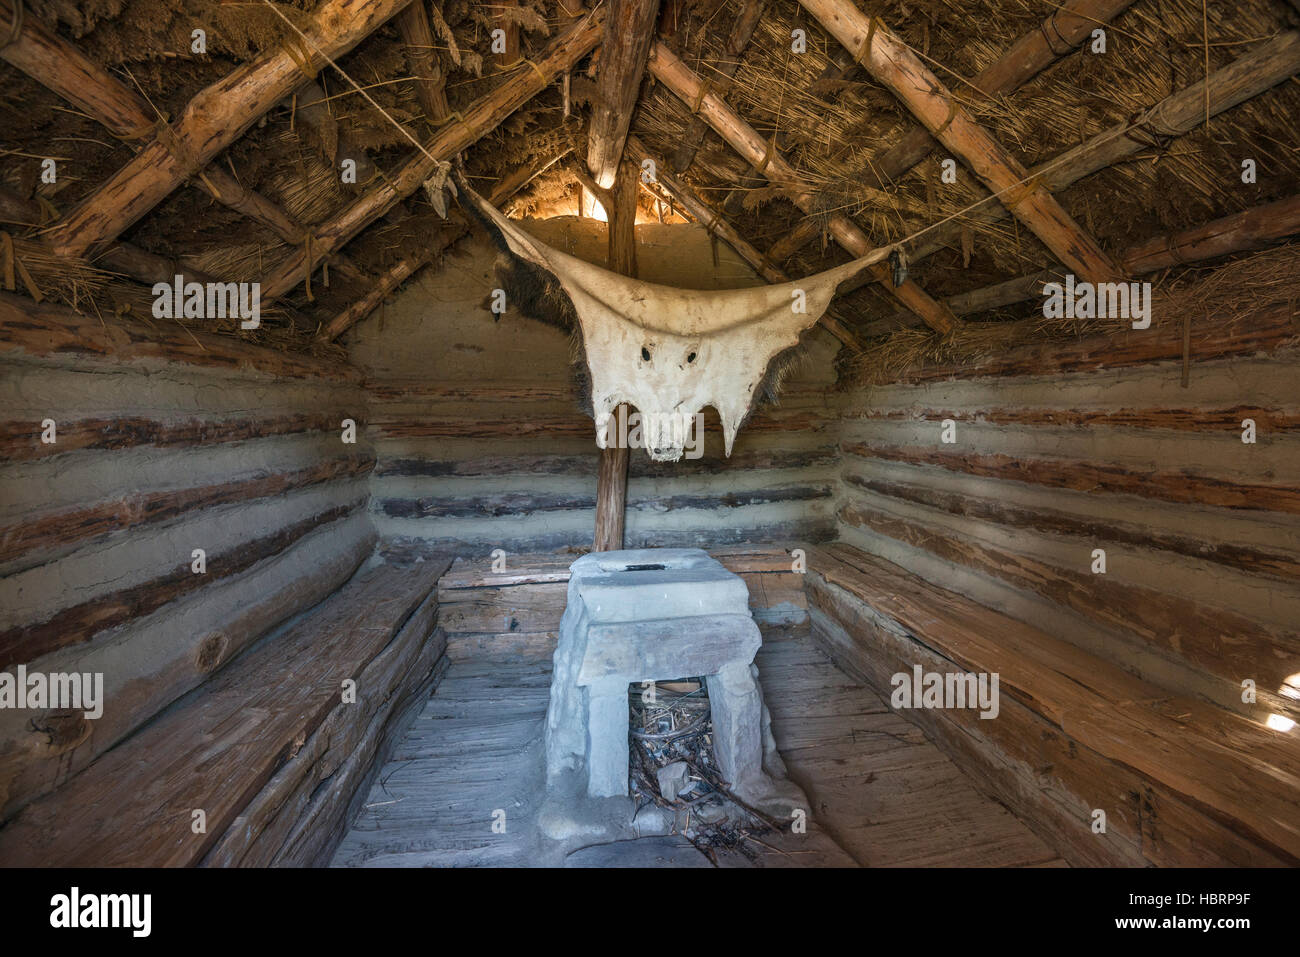 Semi-recessed log cottage, 8th-10th century, reconstruction, Carpathian Troy Archaeological Open-Air Museum in Trzcinica, - Stock Image